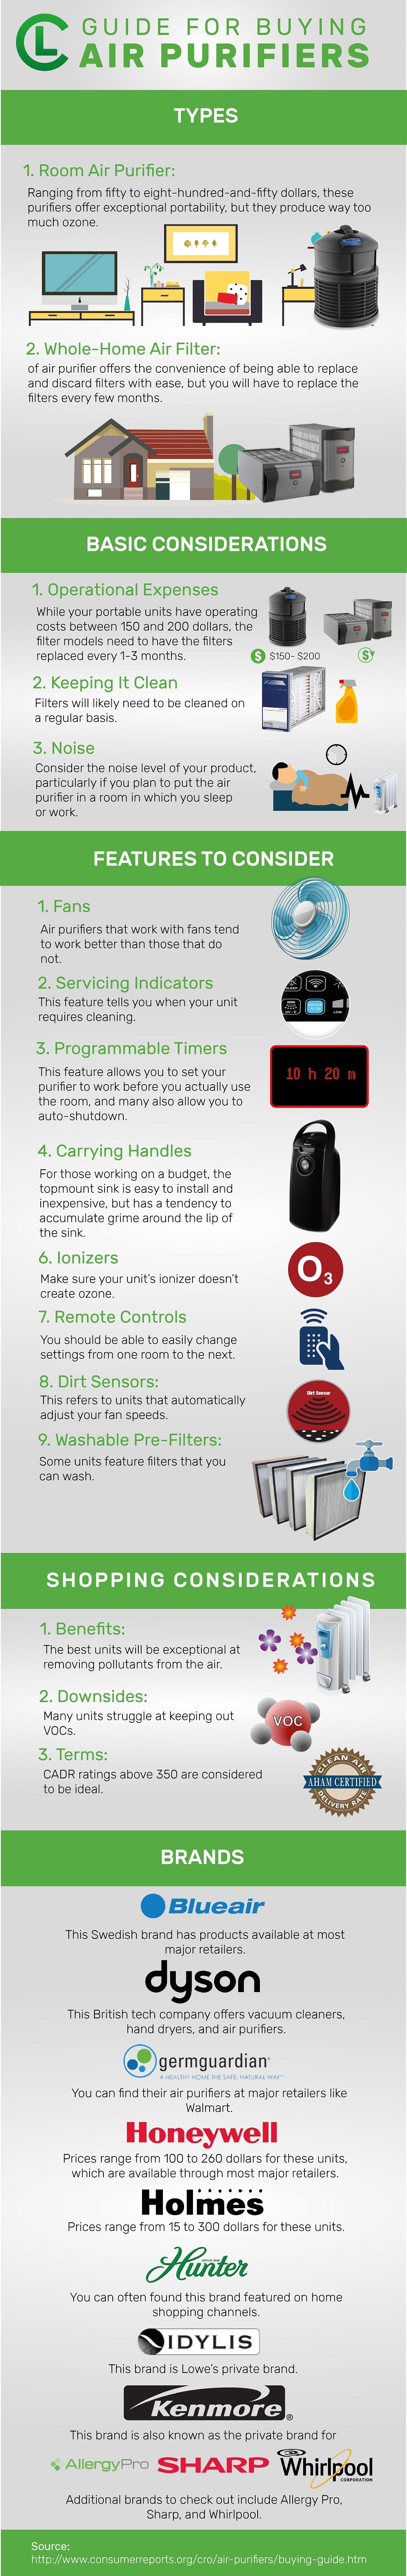 Guide For Buying Air Purifiers Infographic